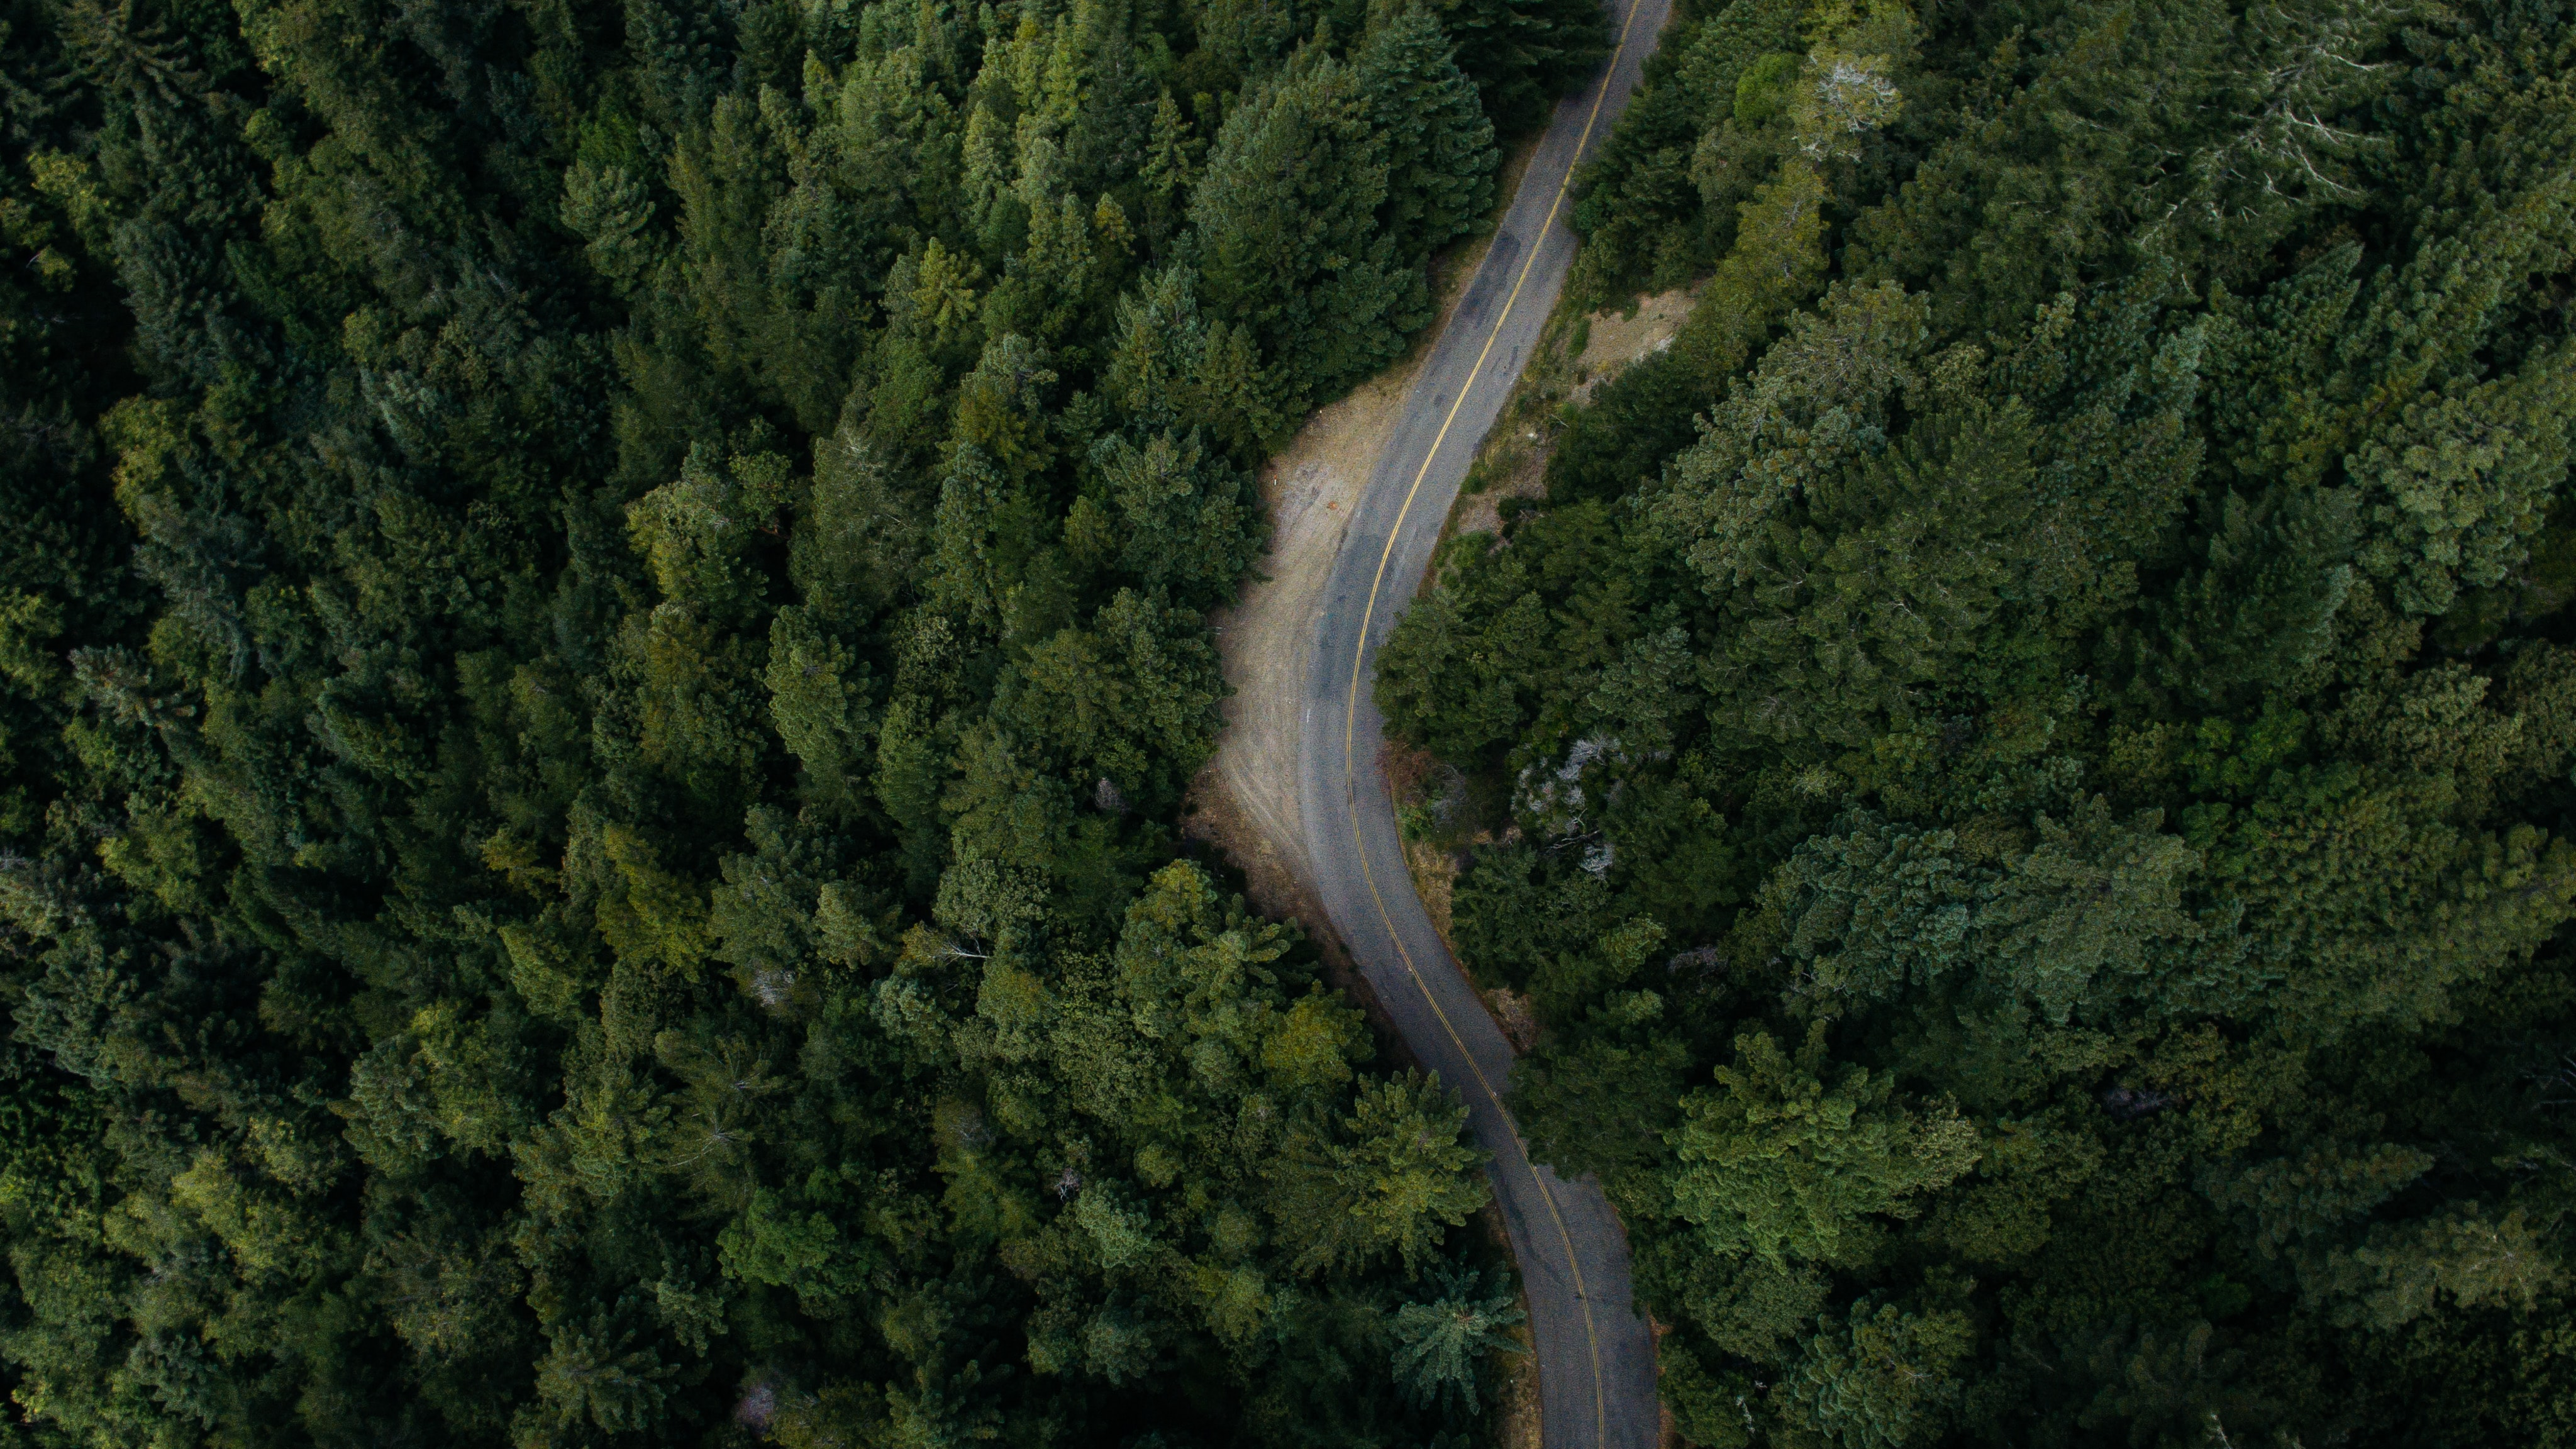 A drone view of a road that cuts through the forest in Annapolis, California, United States